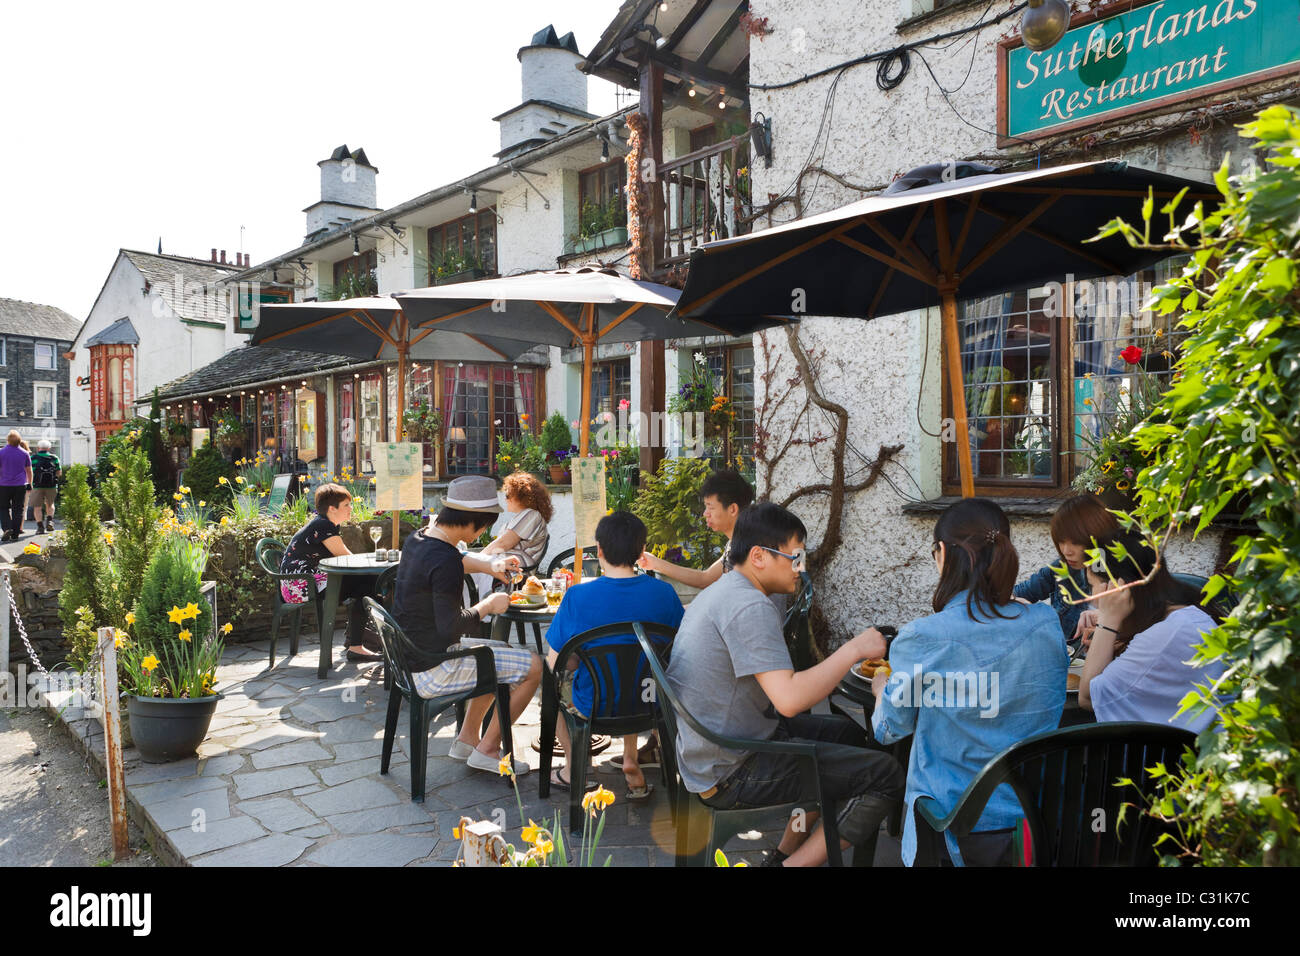 Traditional restaurant in the village centre, Bowness, Lake Windermere, Lake District National Park, Cumbria, UK - Stock Image